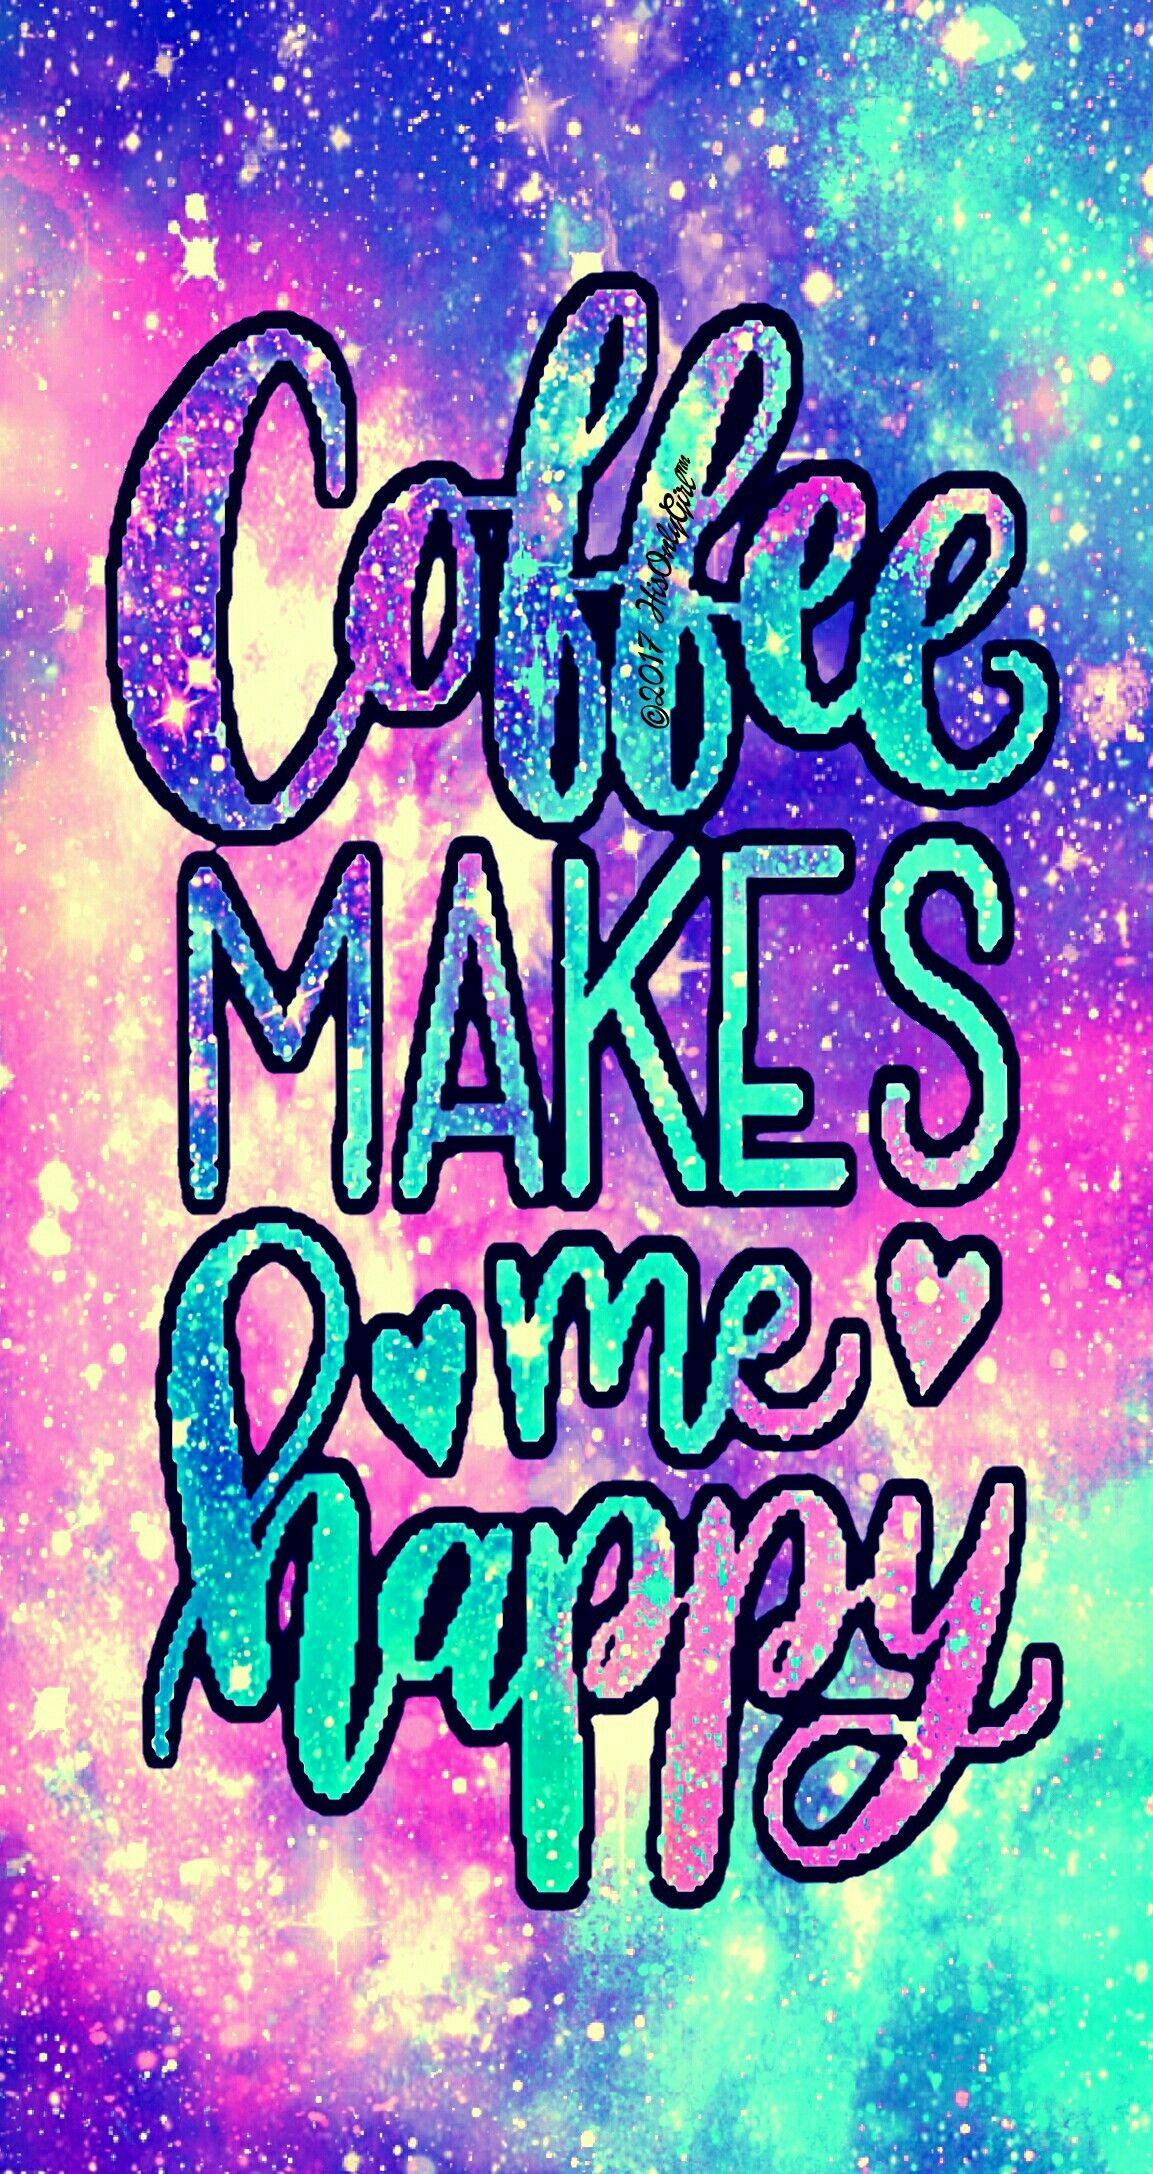 Happy coffee galaxy wallpaper I created for the app CocoPPa